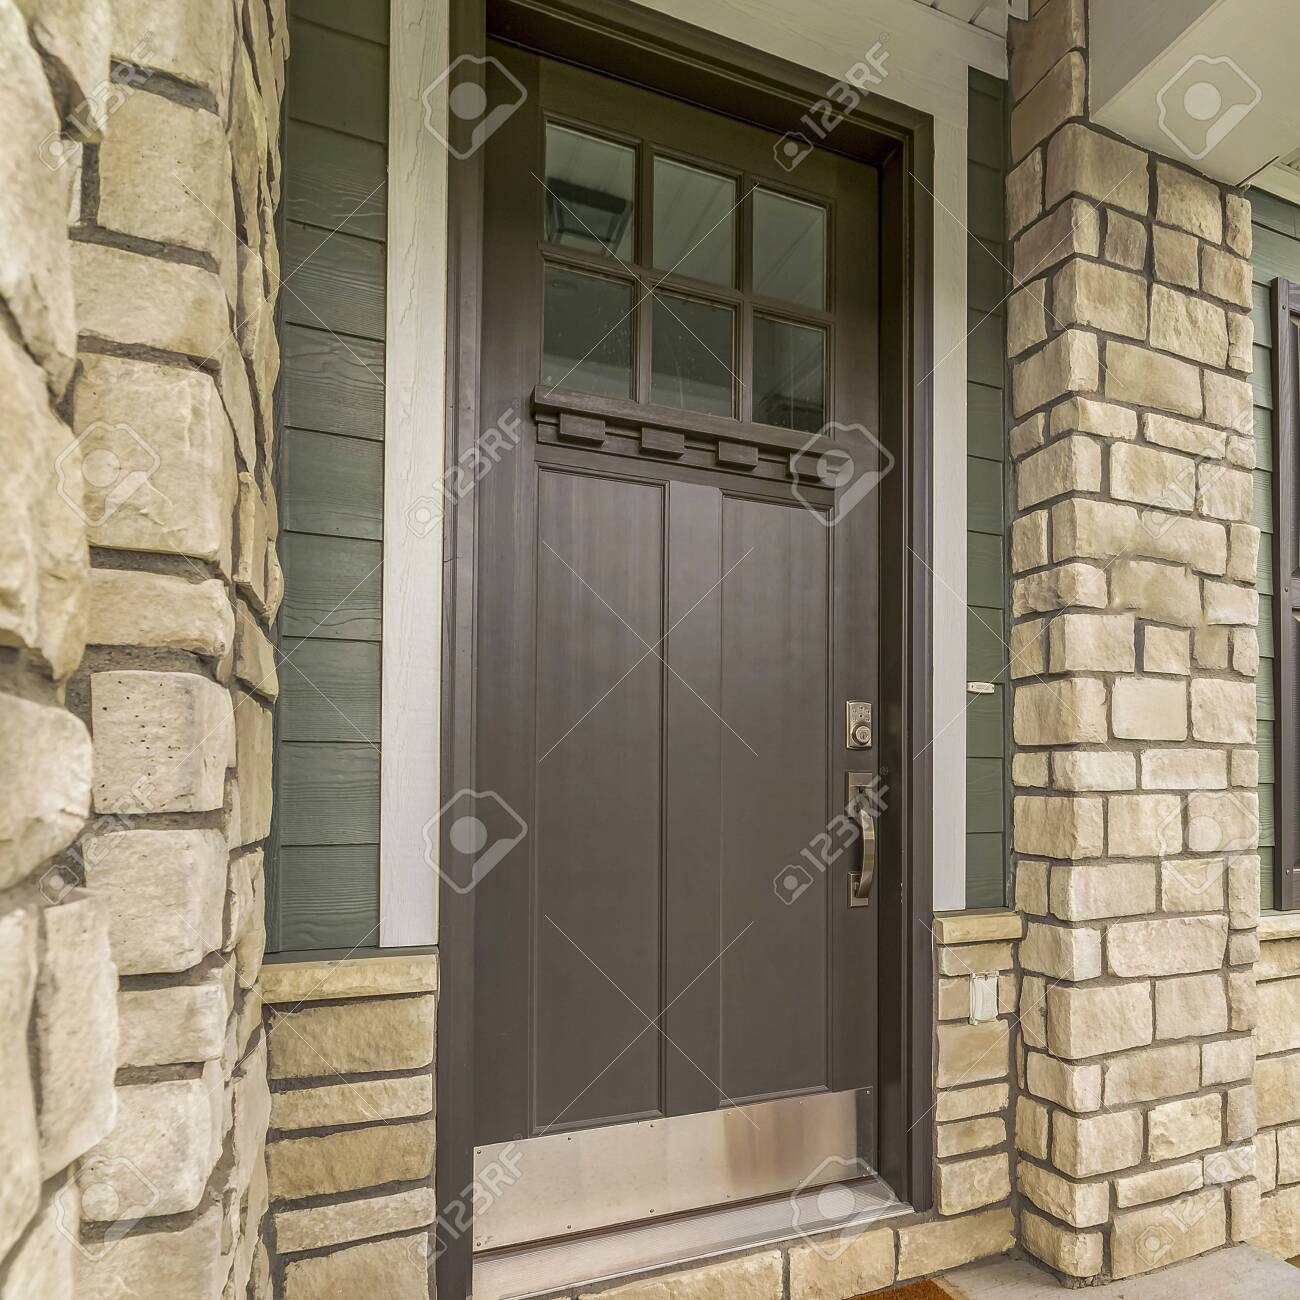 Square Home Entrance With A Glass Paned Brown Wooden Door And